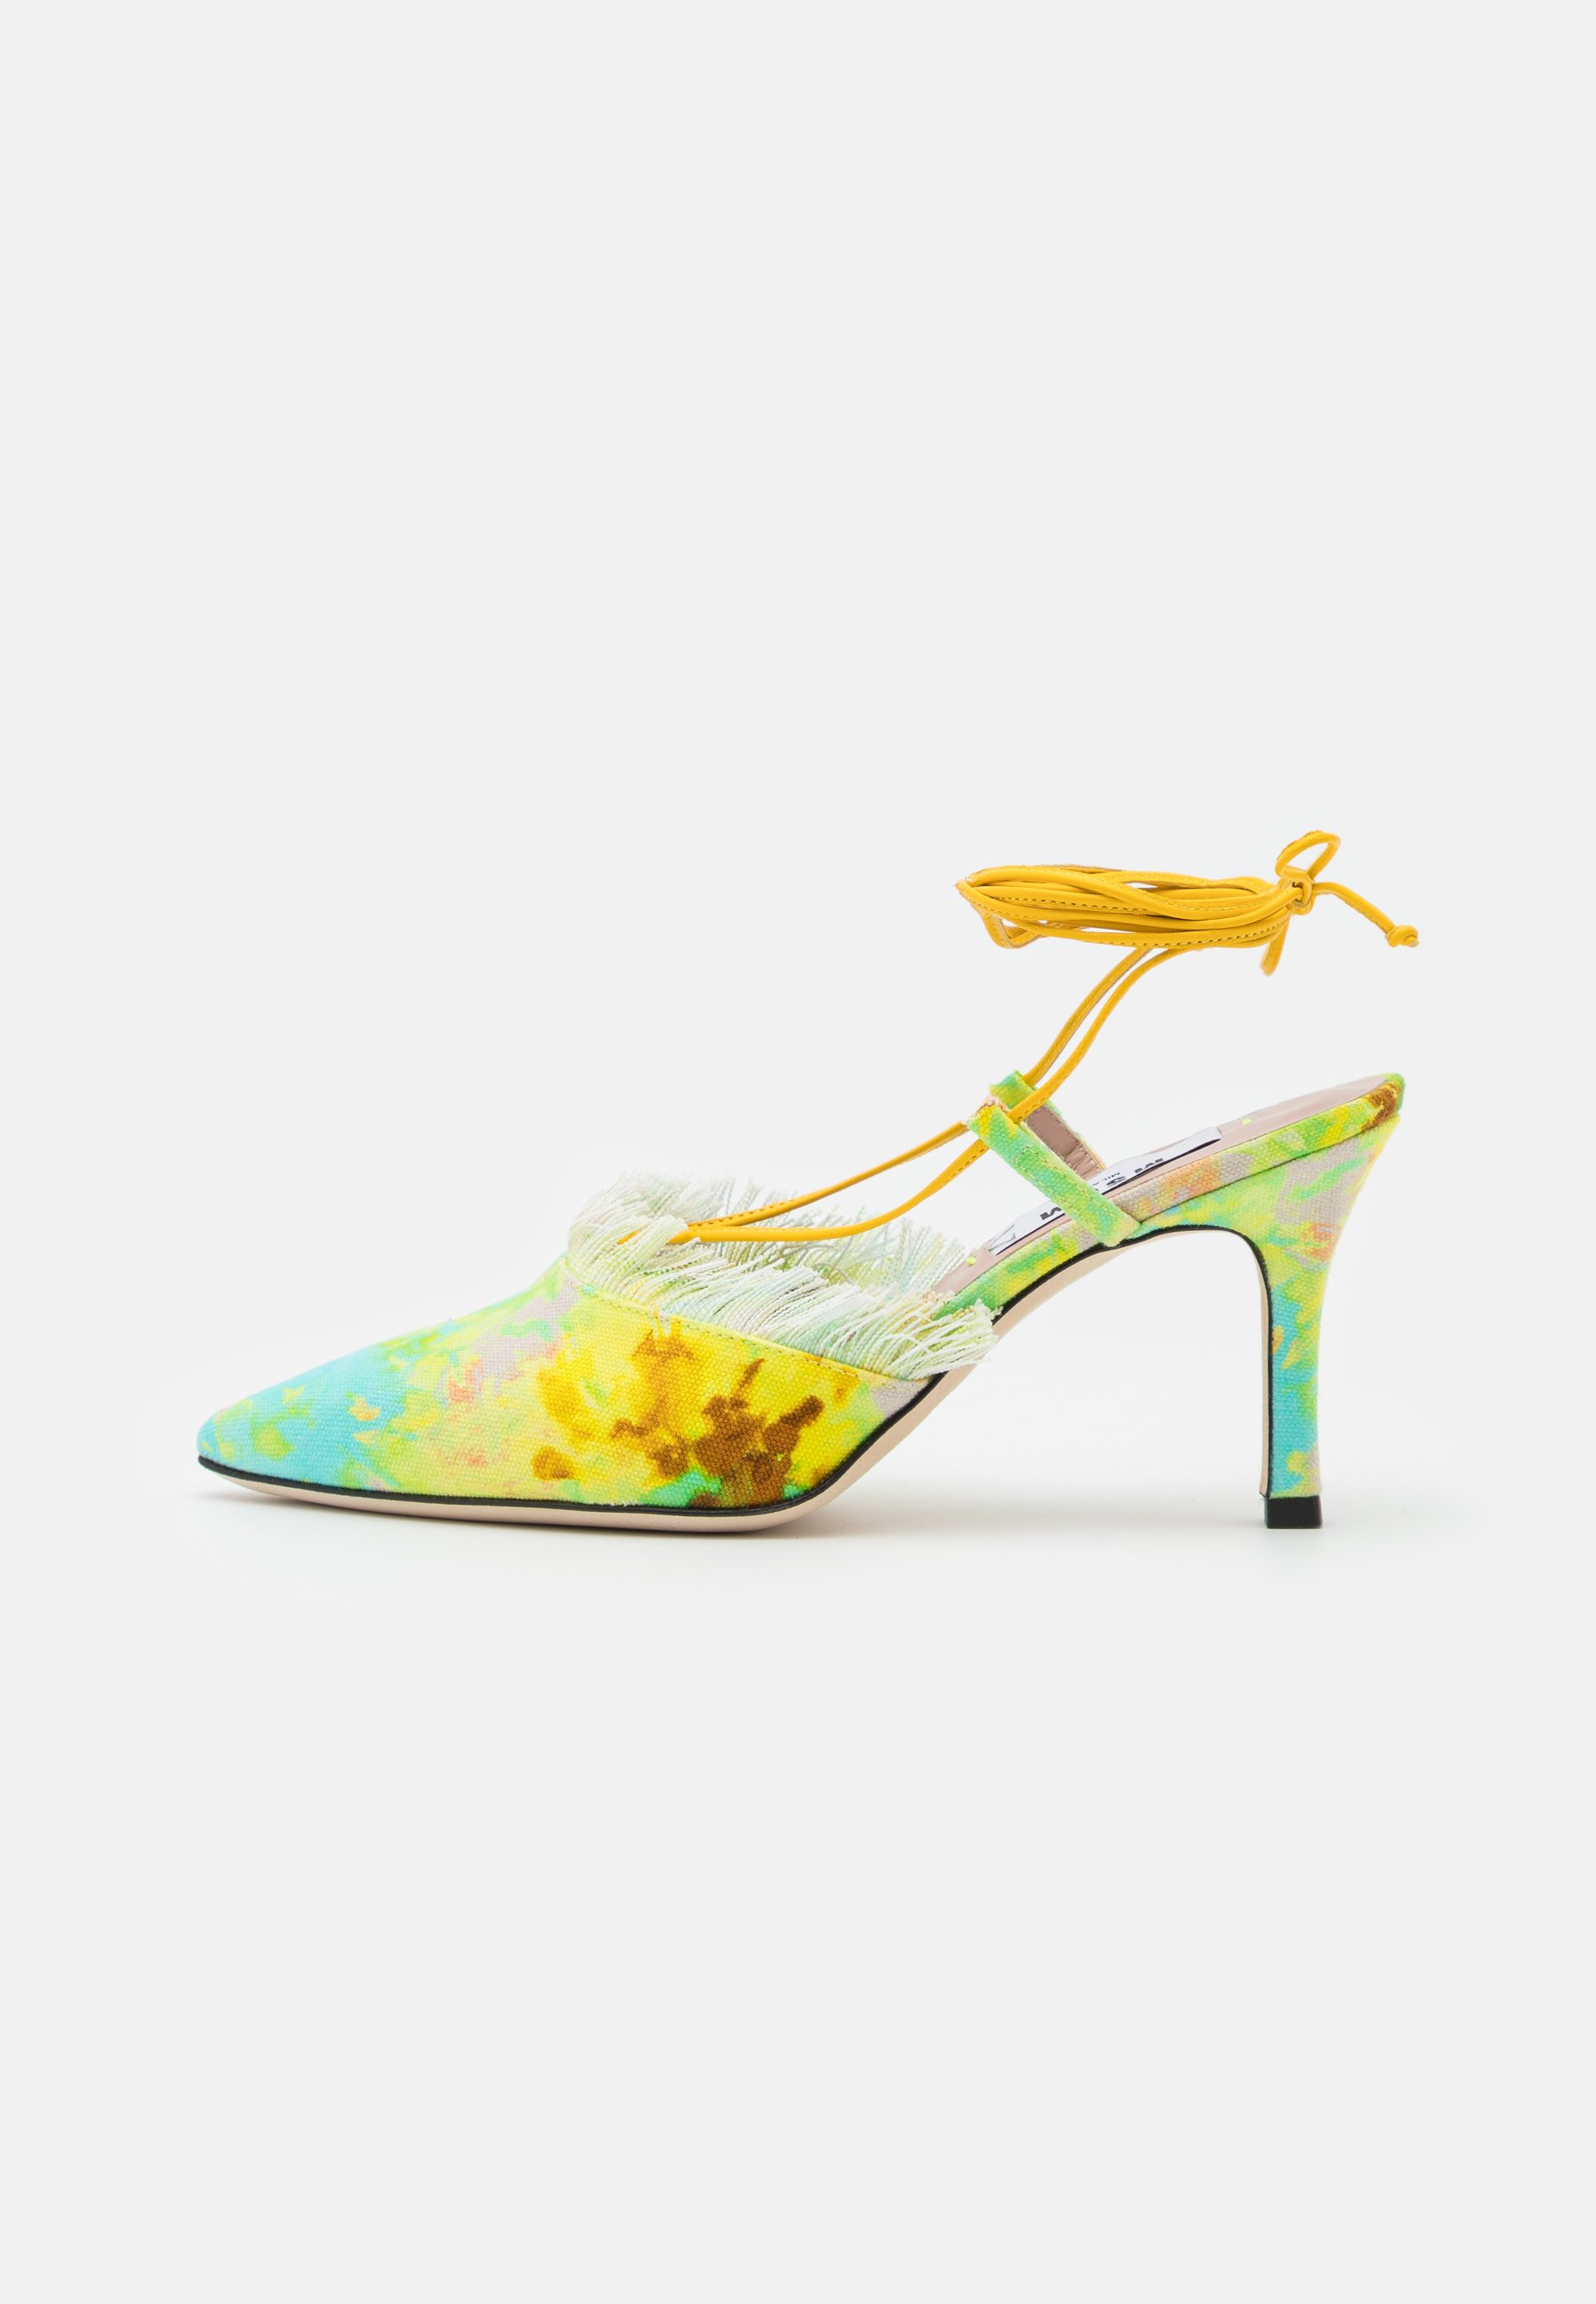 Women SCARPA DONNA WOMAN`S SHOES - Lace-up heels